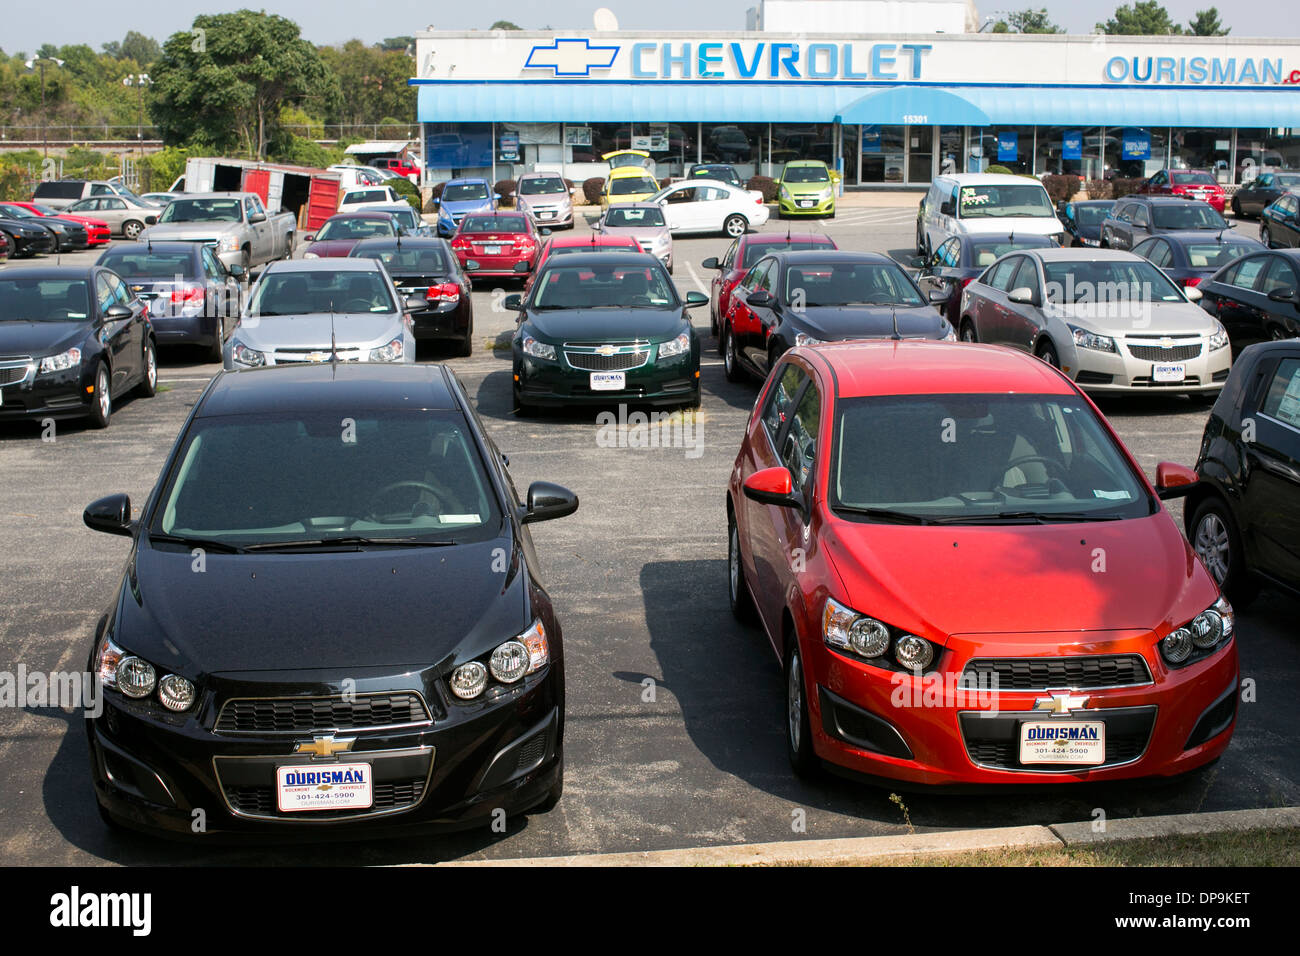 A Chevrolet, Chevy, dealer lot in suburban Maryland. - Stock Image